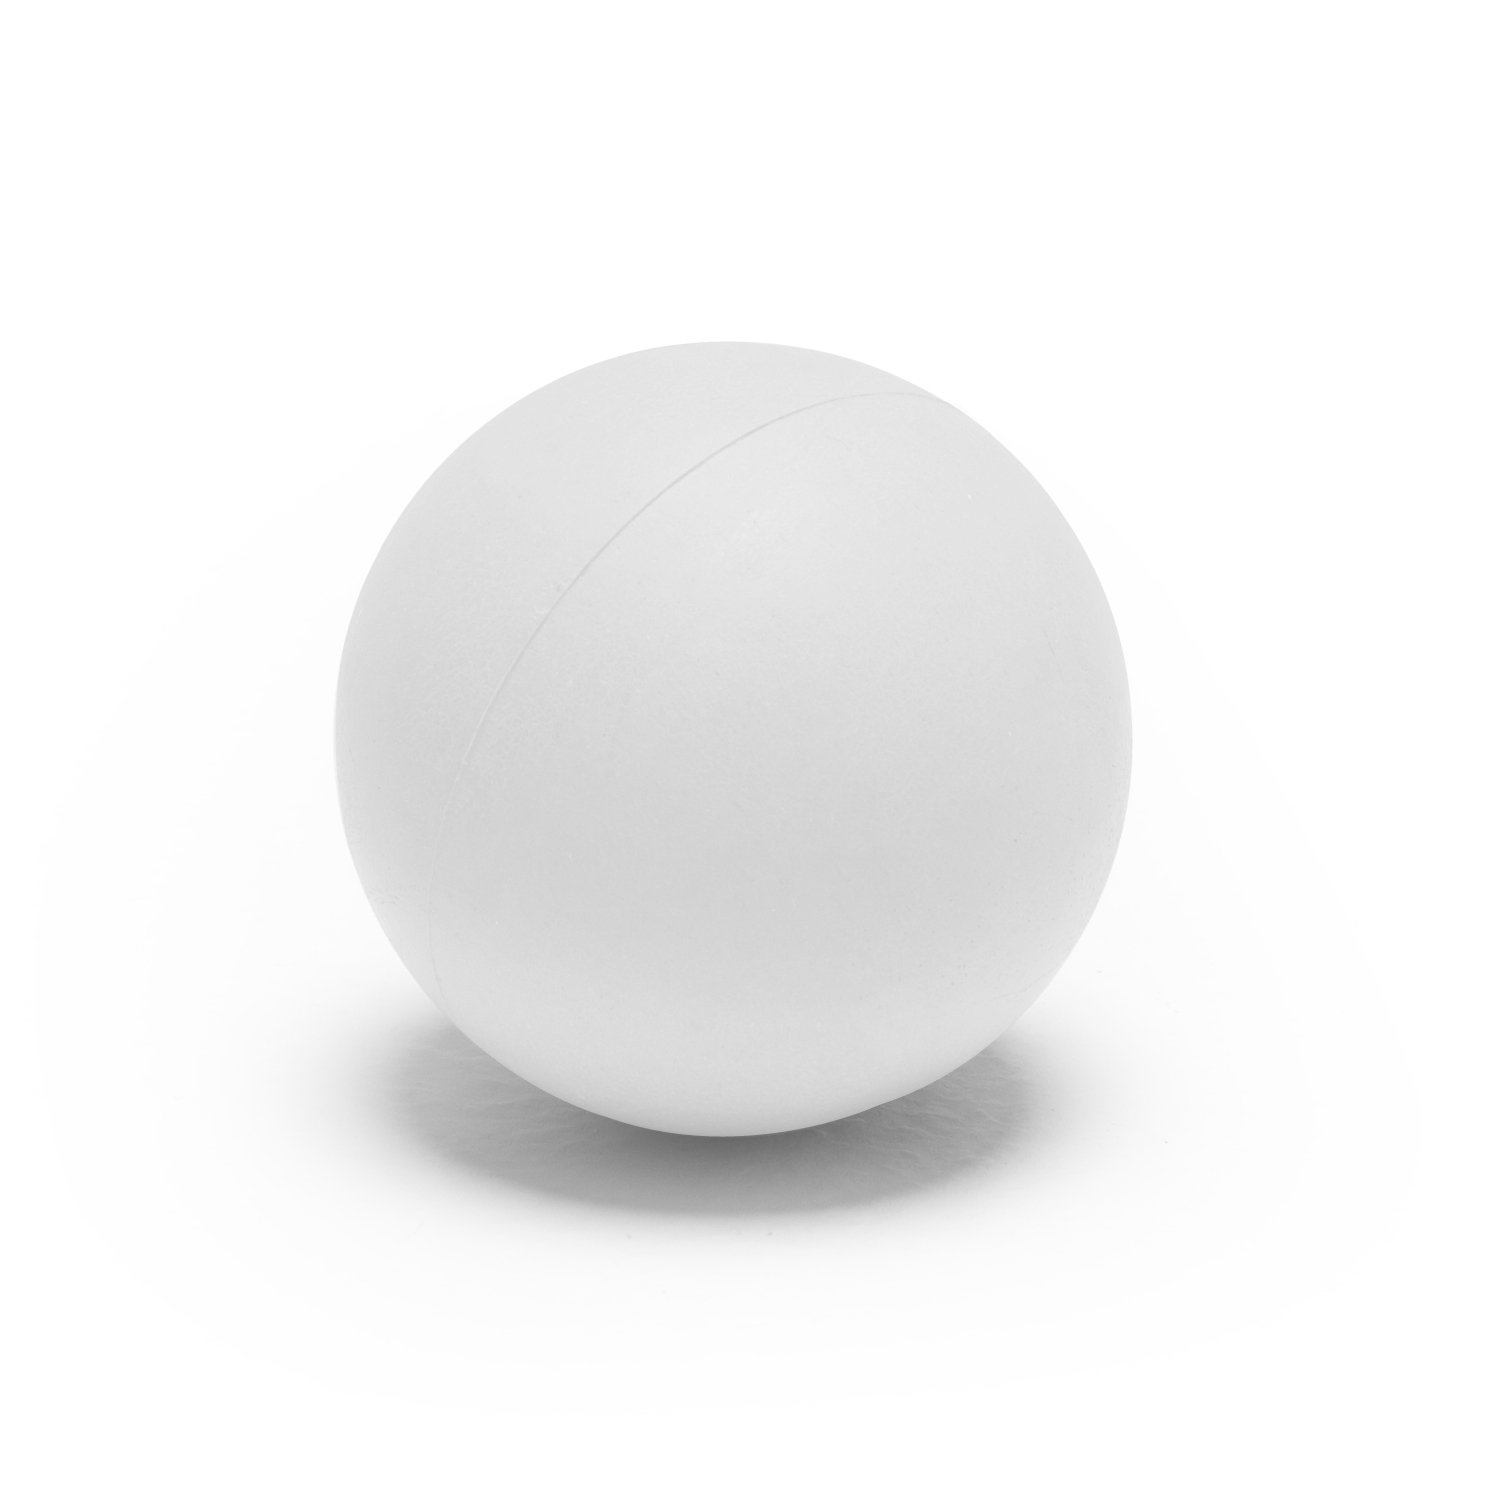 Champion Sports Soft Lacrosse Practice Ball, Pack of 12, White